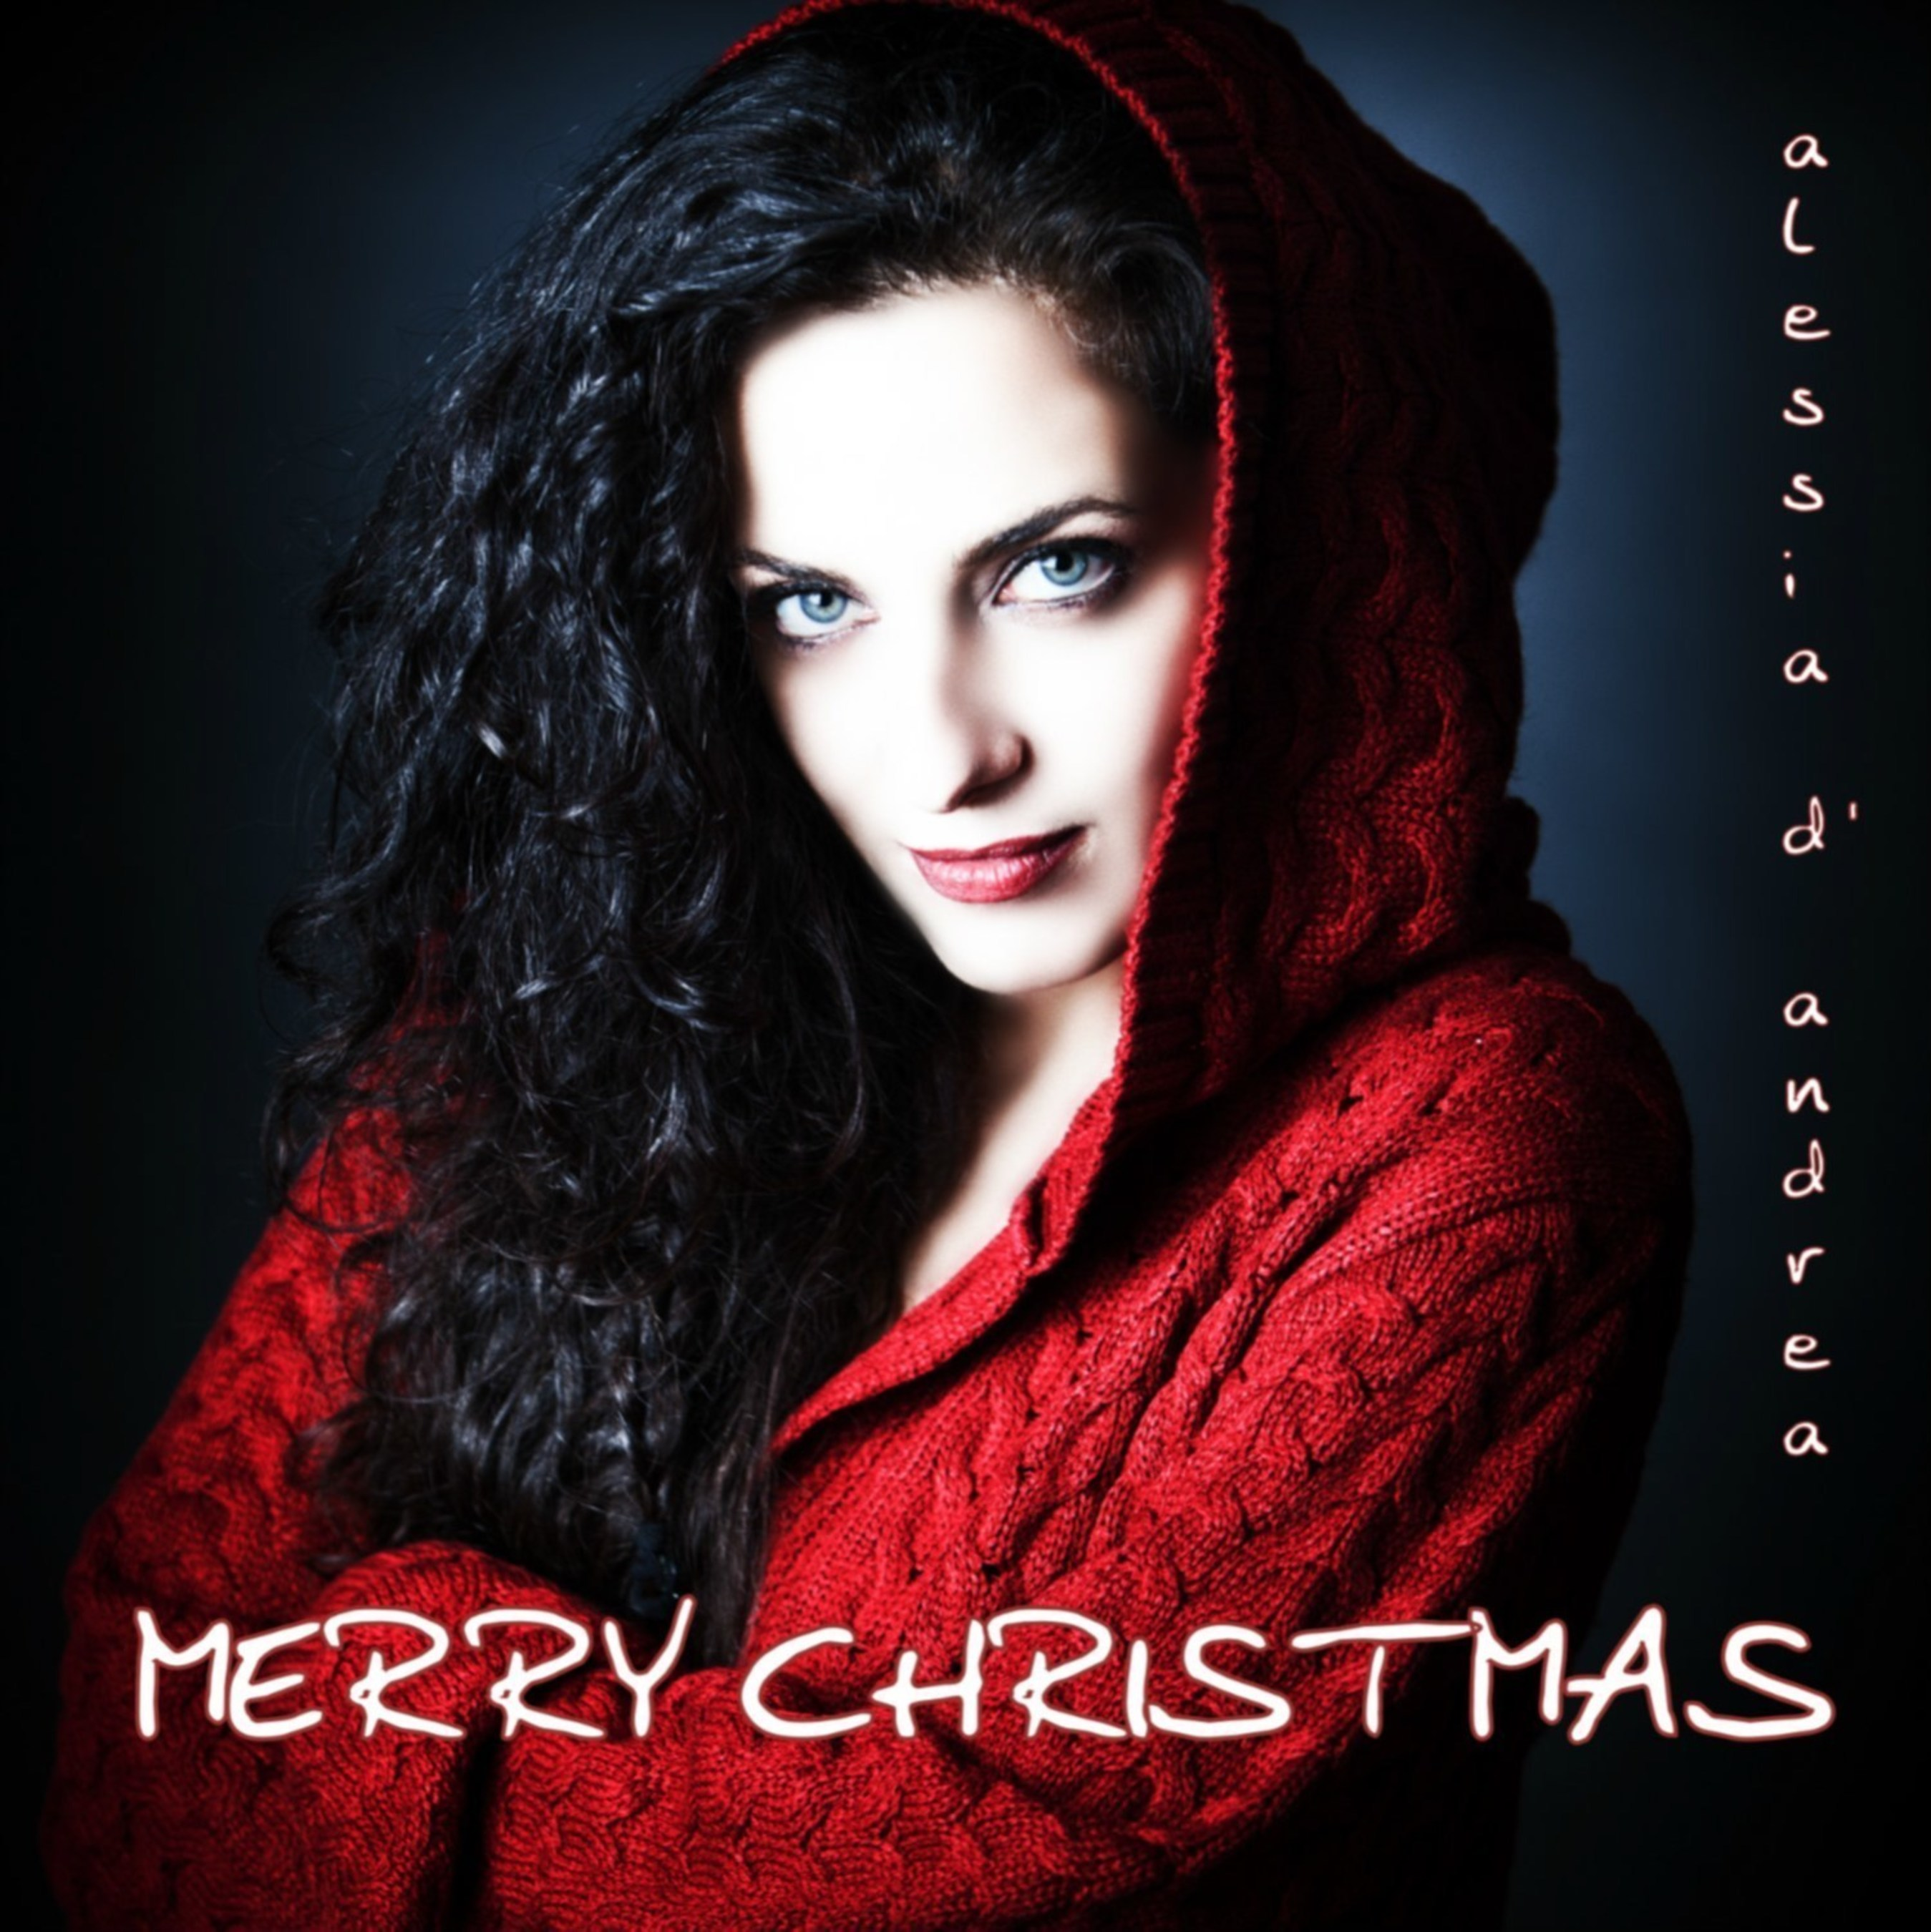 Italian Songstress Alessia d' Andrea Introduces New Holiday Single to American Audiences